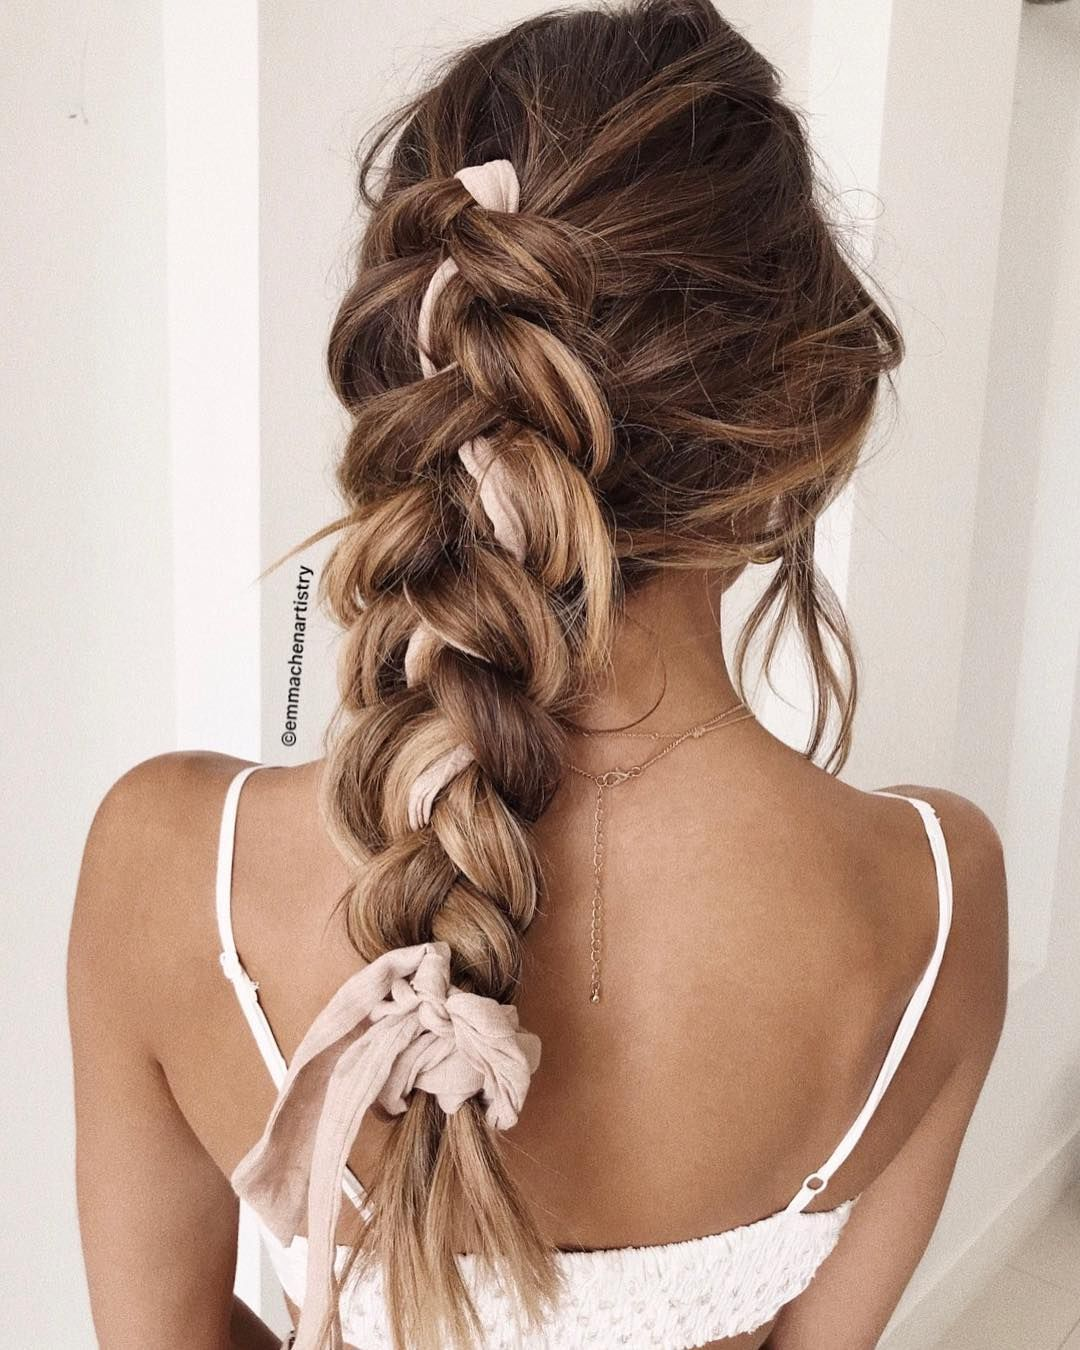 Simple braid hairstyle , updo hairstyle inspiration ,hairstyles ,updo ,messy updo